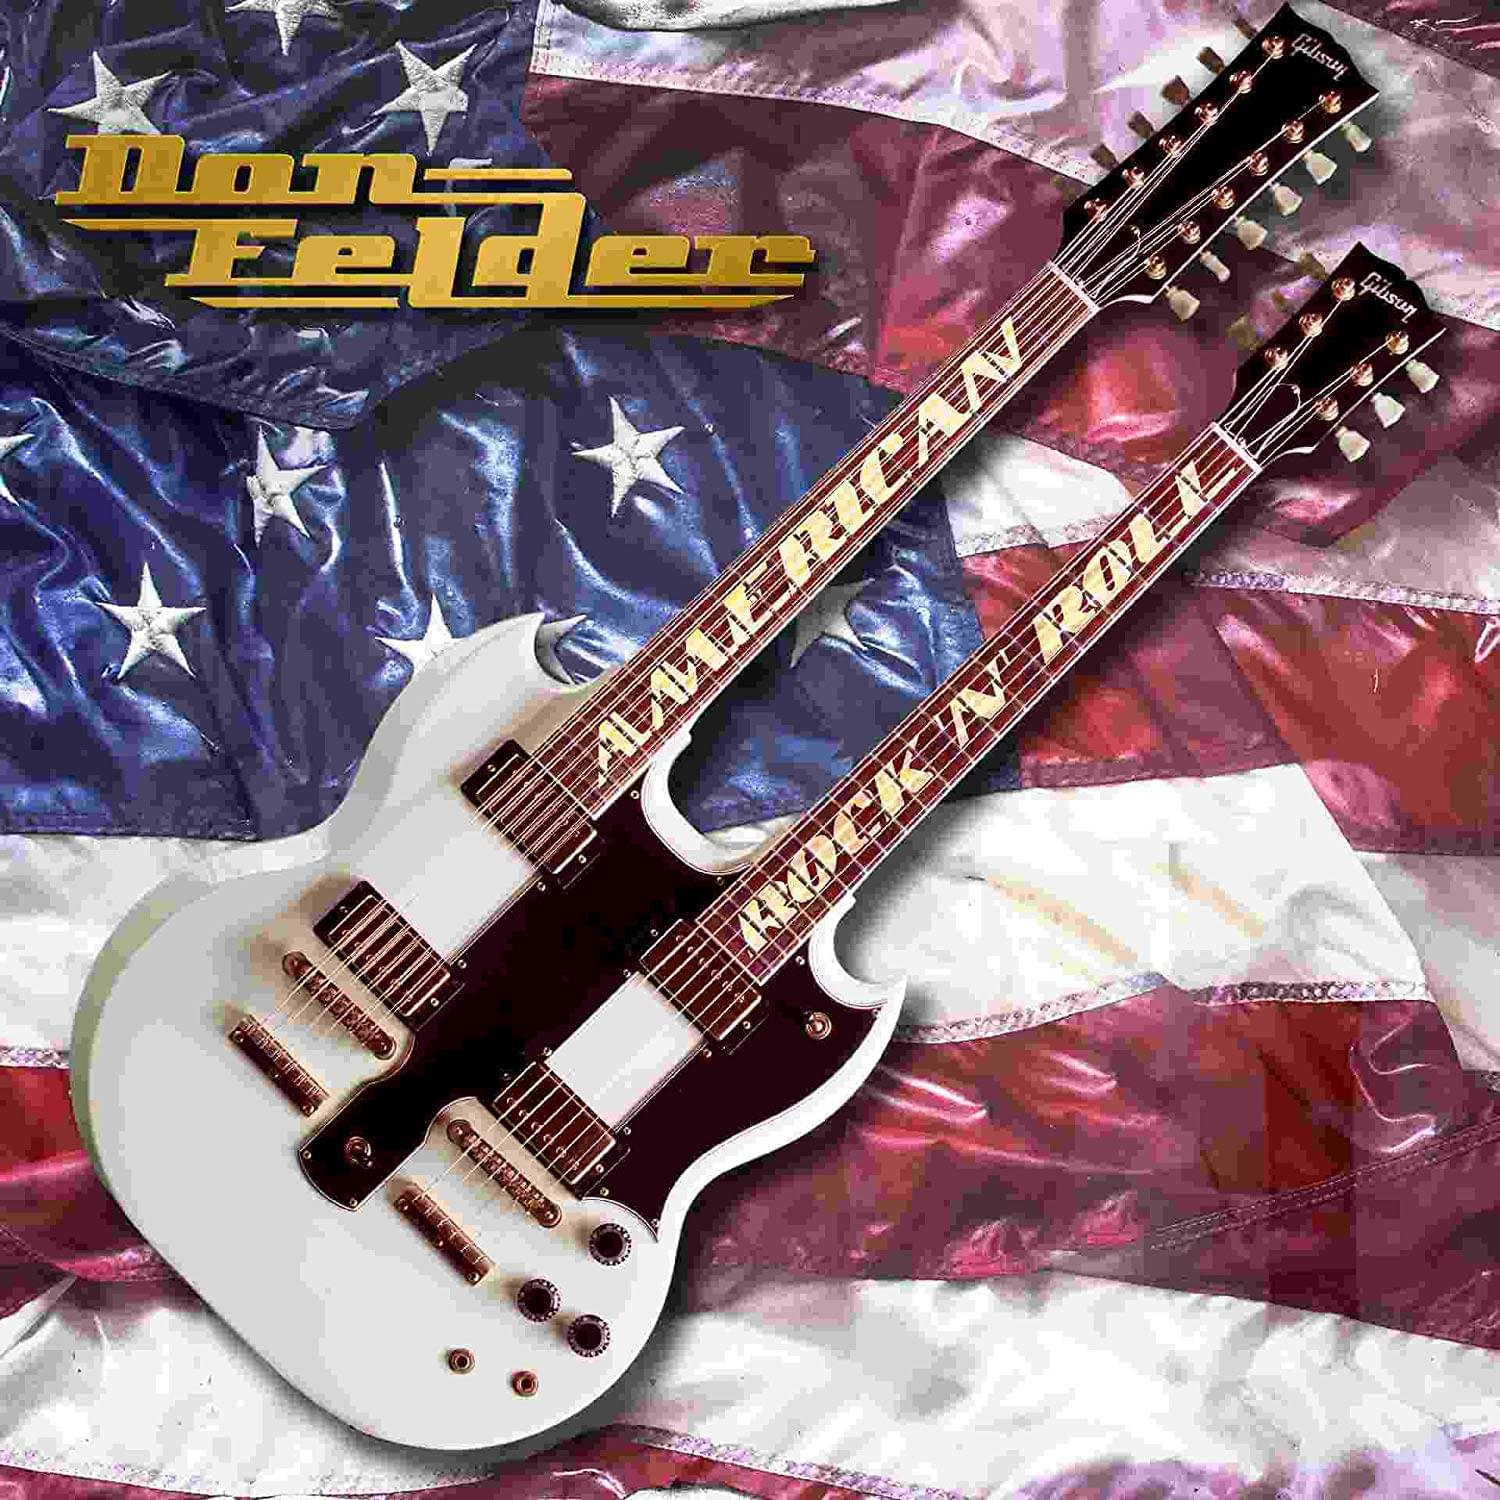 LISTEN: Scott catches up with Don Felder